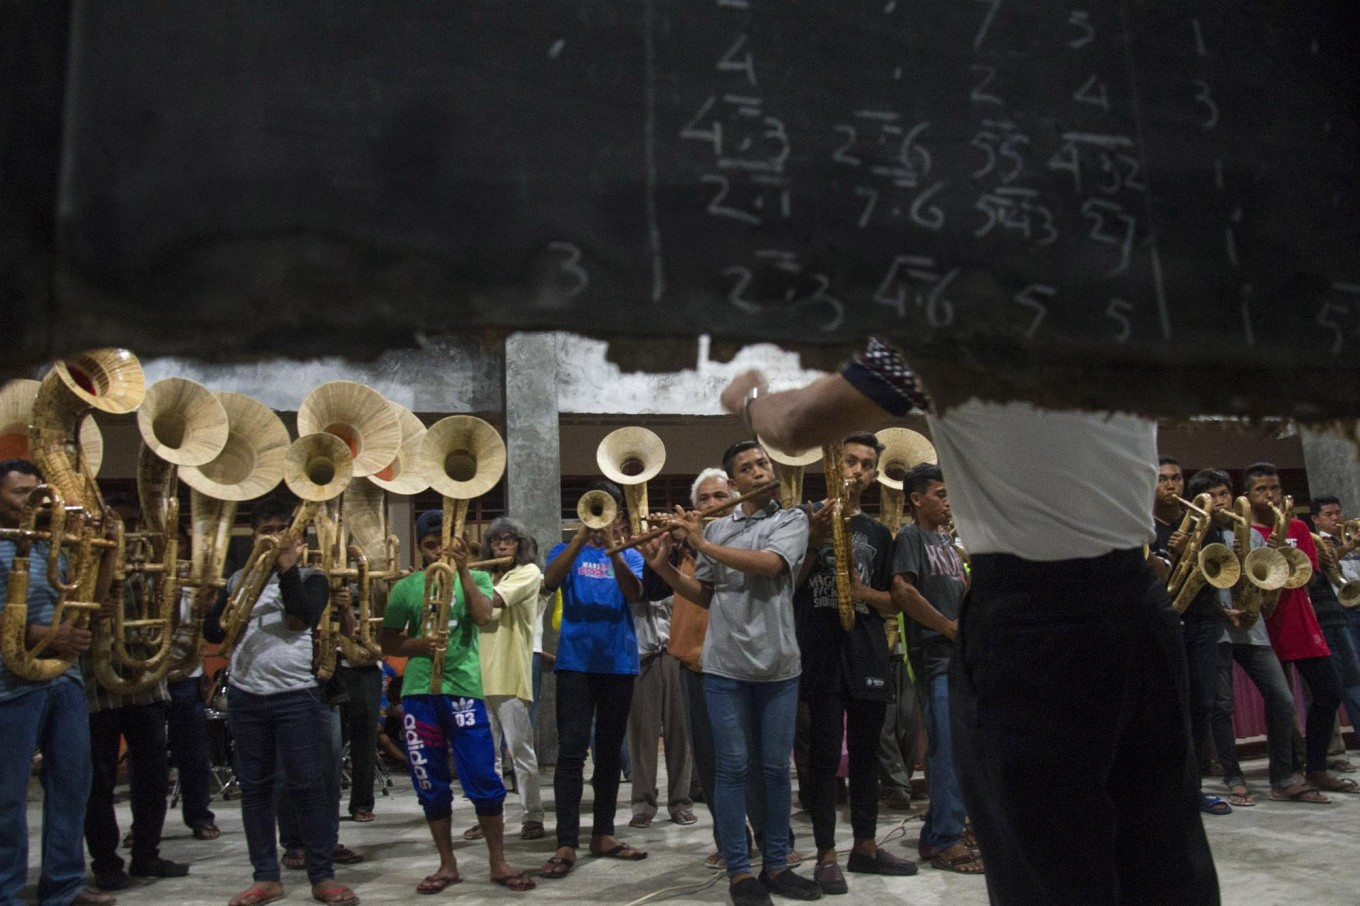 High and low: The music troupe in Sangihe, North Sulawesi, practices using a humble blackboard on which is written the musical score. JP/ Tarko Sudiarno